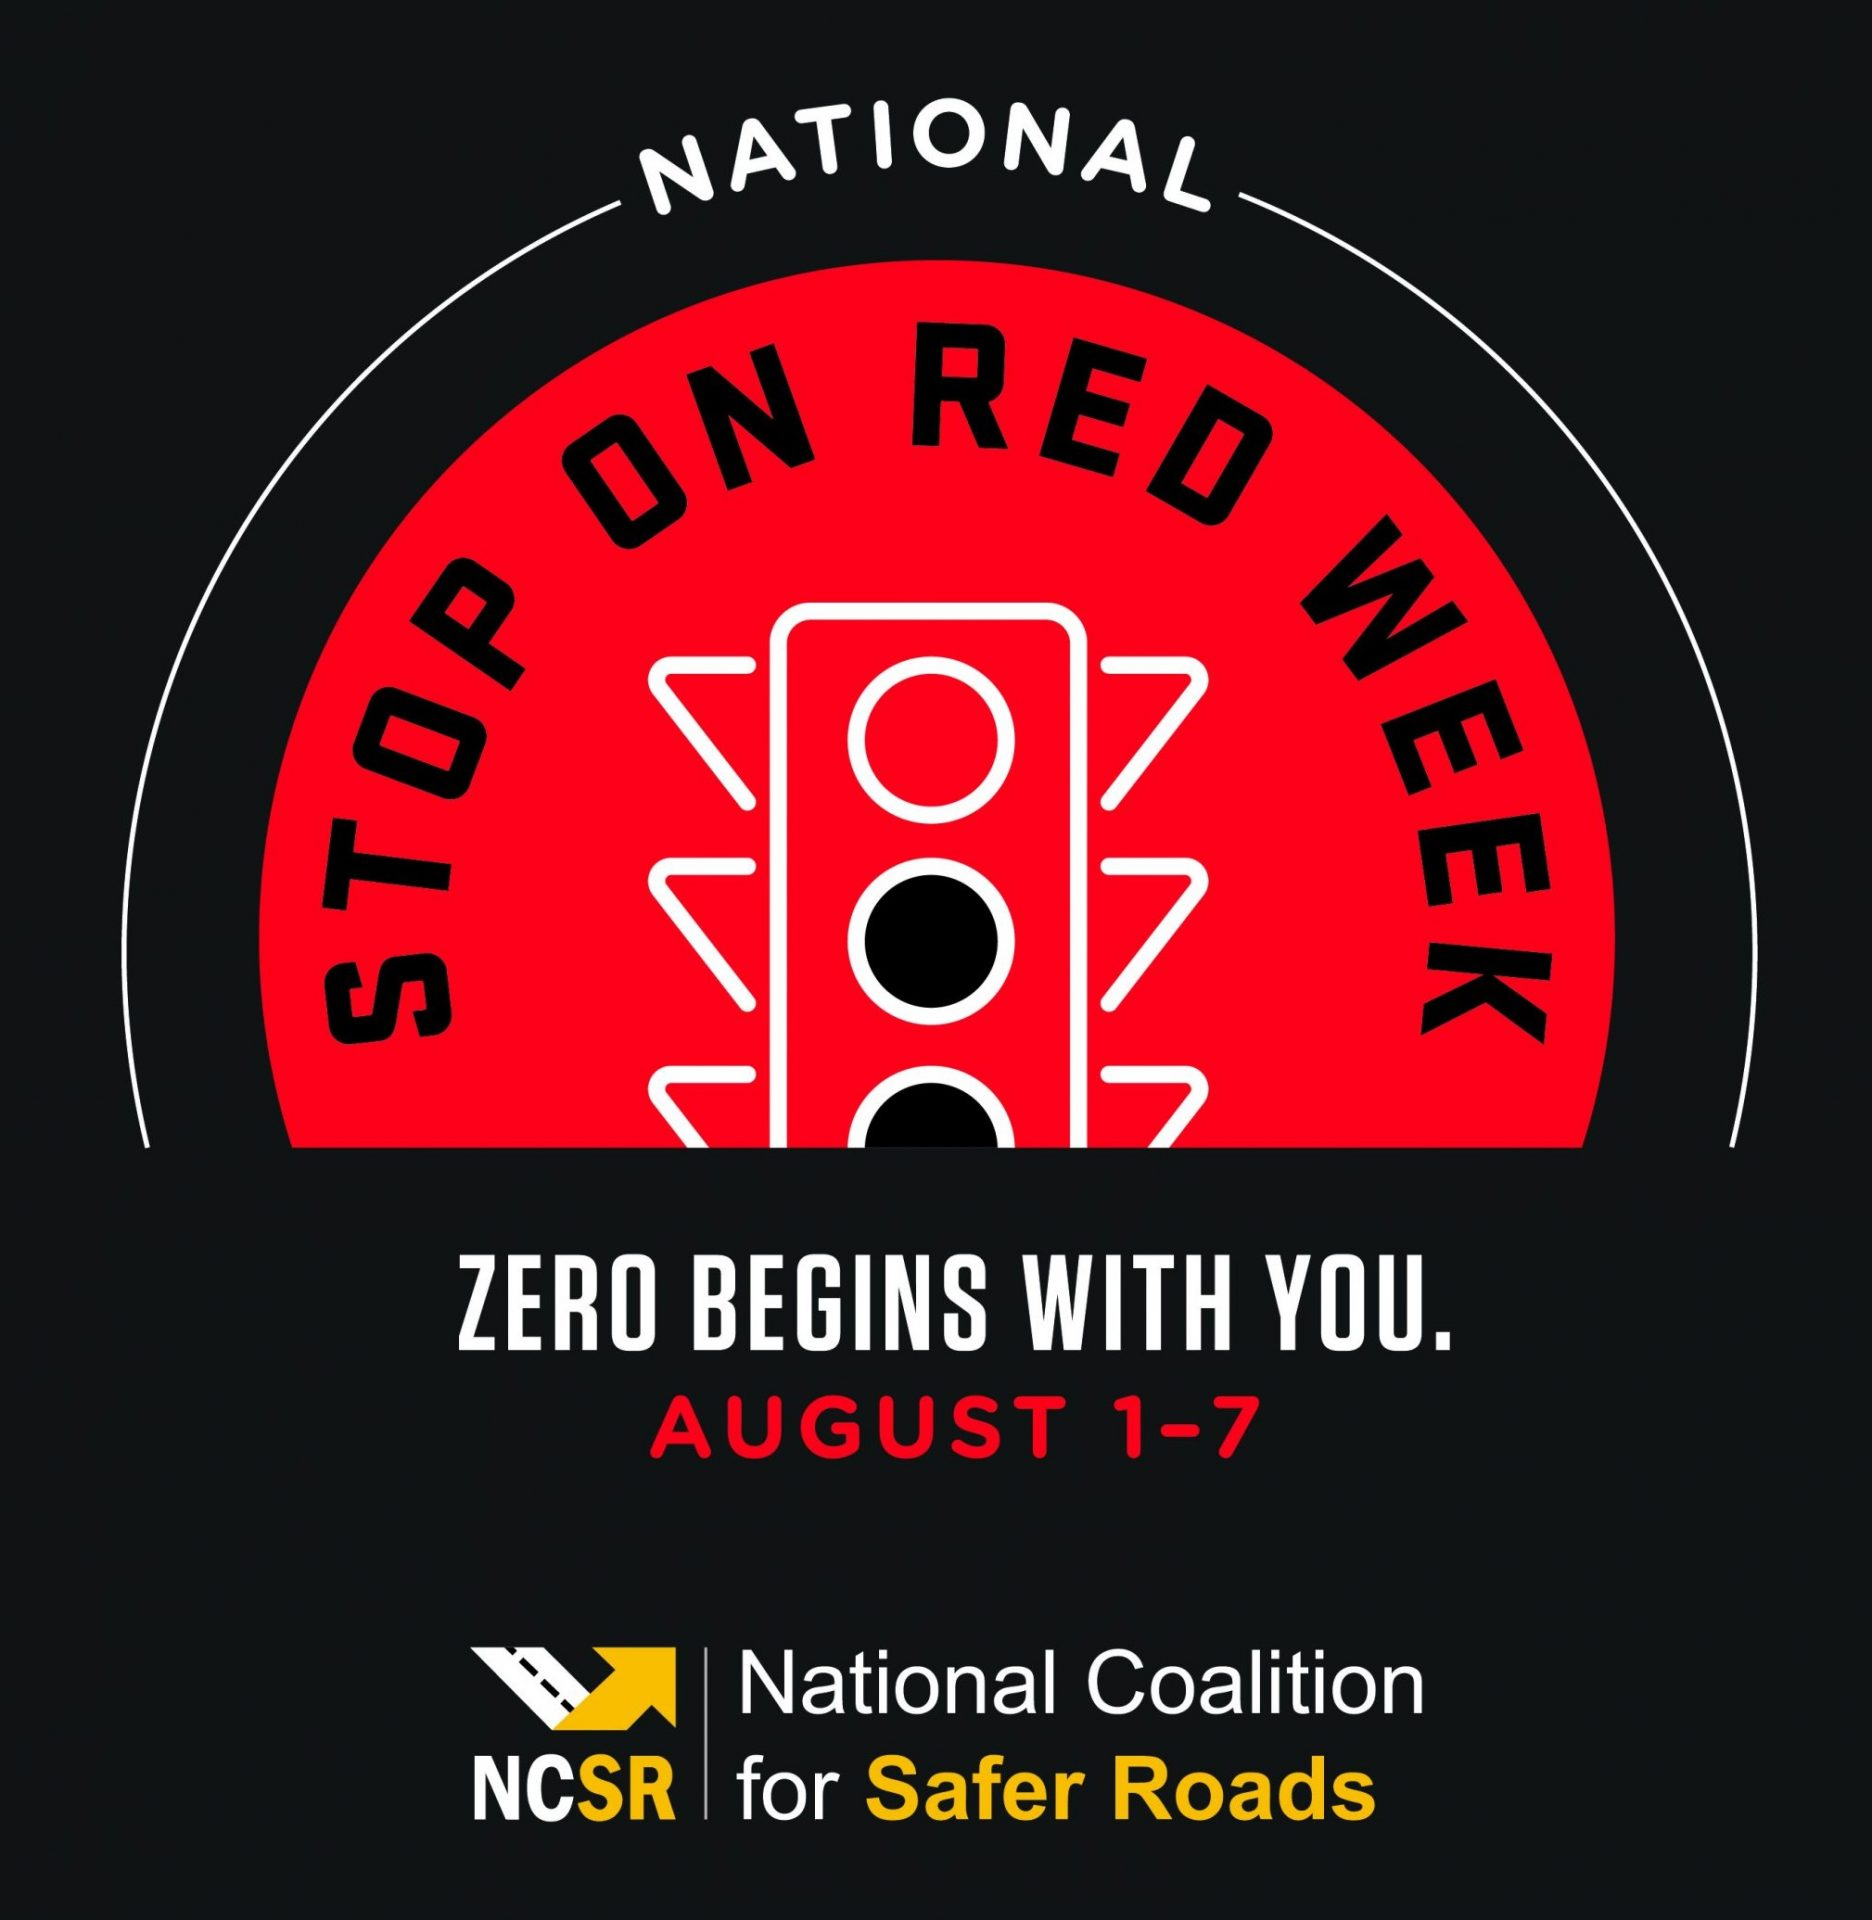 Counties Encouraged to Participate in National #StopOnRed2021 Week to Promote Road Safety